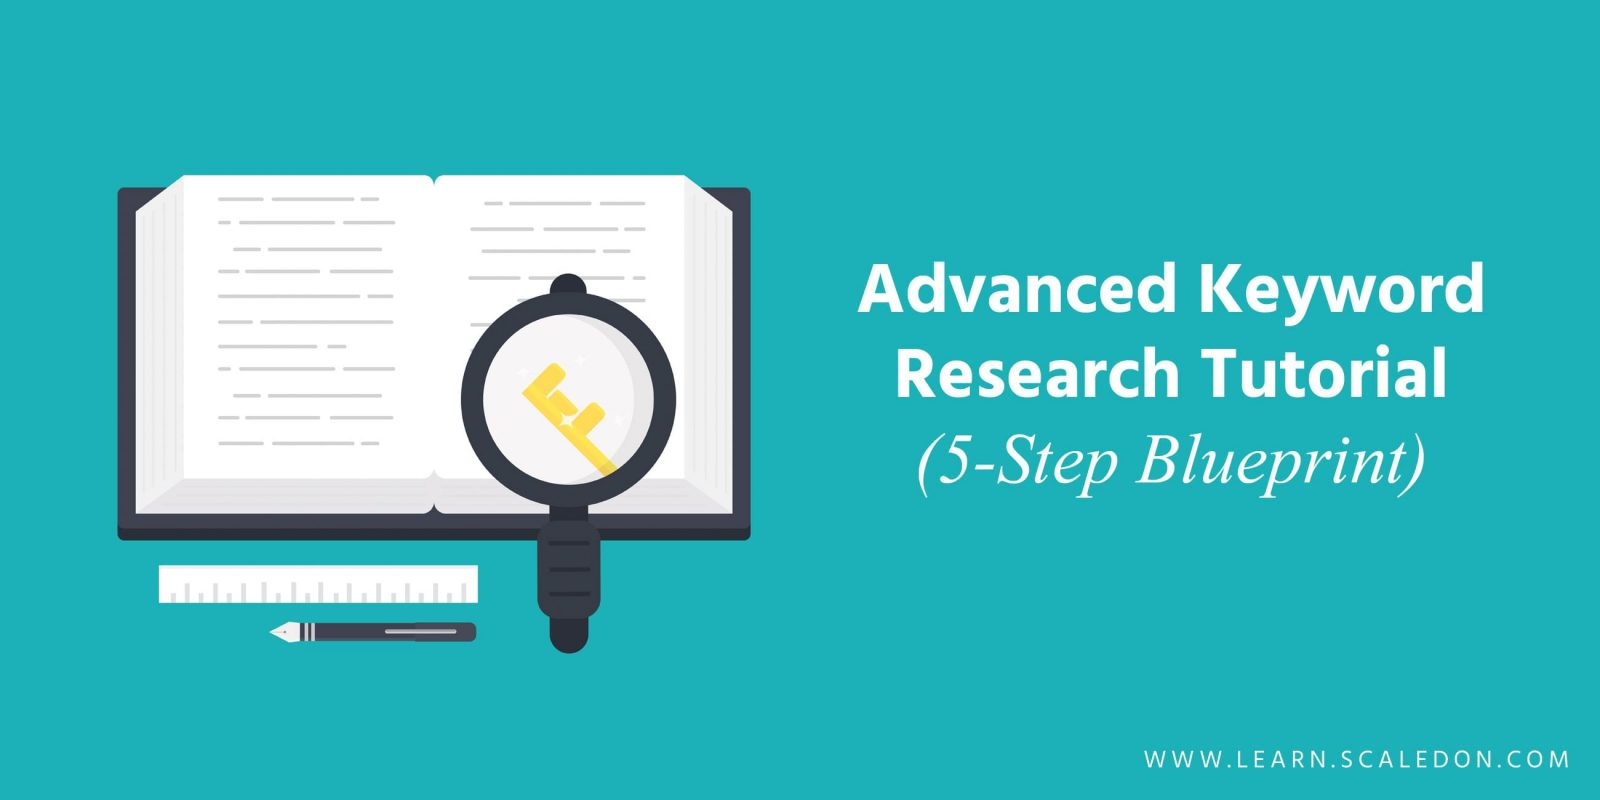 Advanced Keyword Research Tutorial